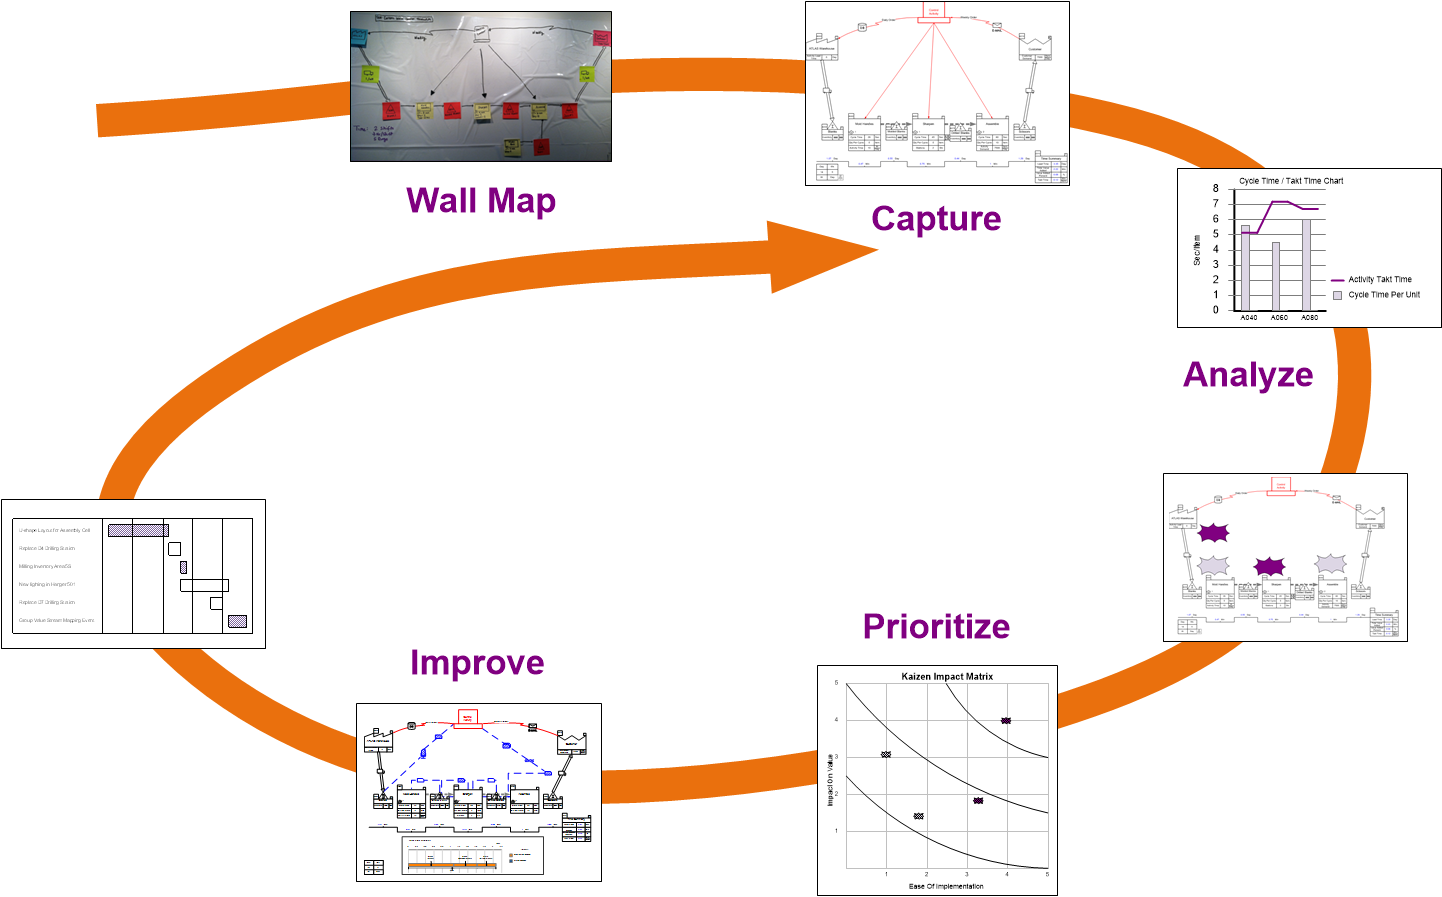 value stream mapping and the continuous improvement cycle, how to capture a wall map